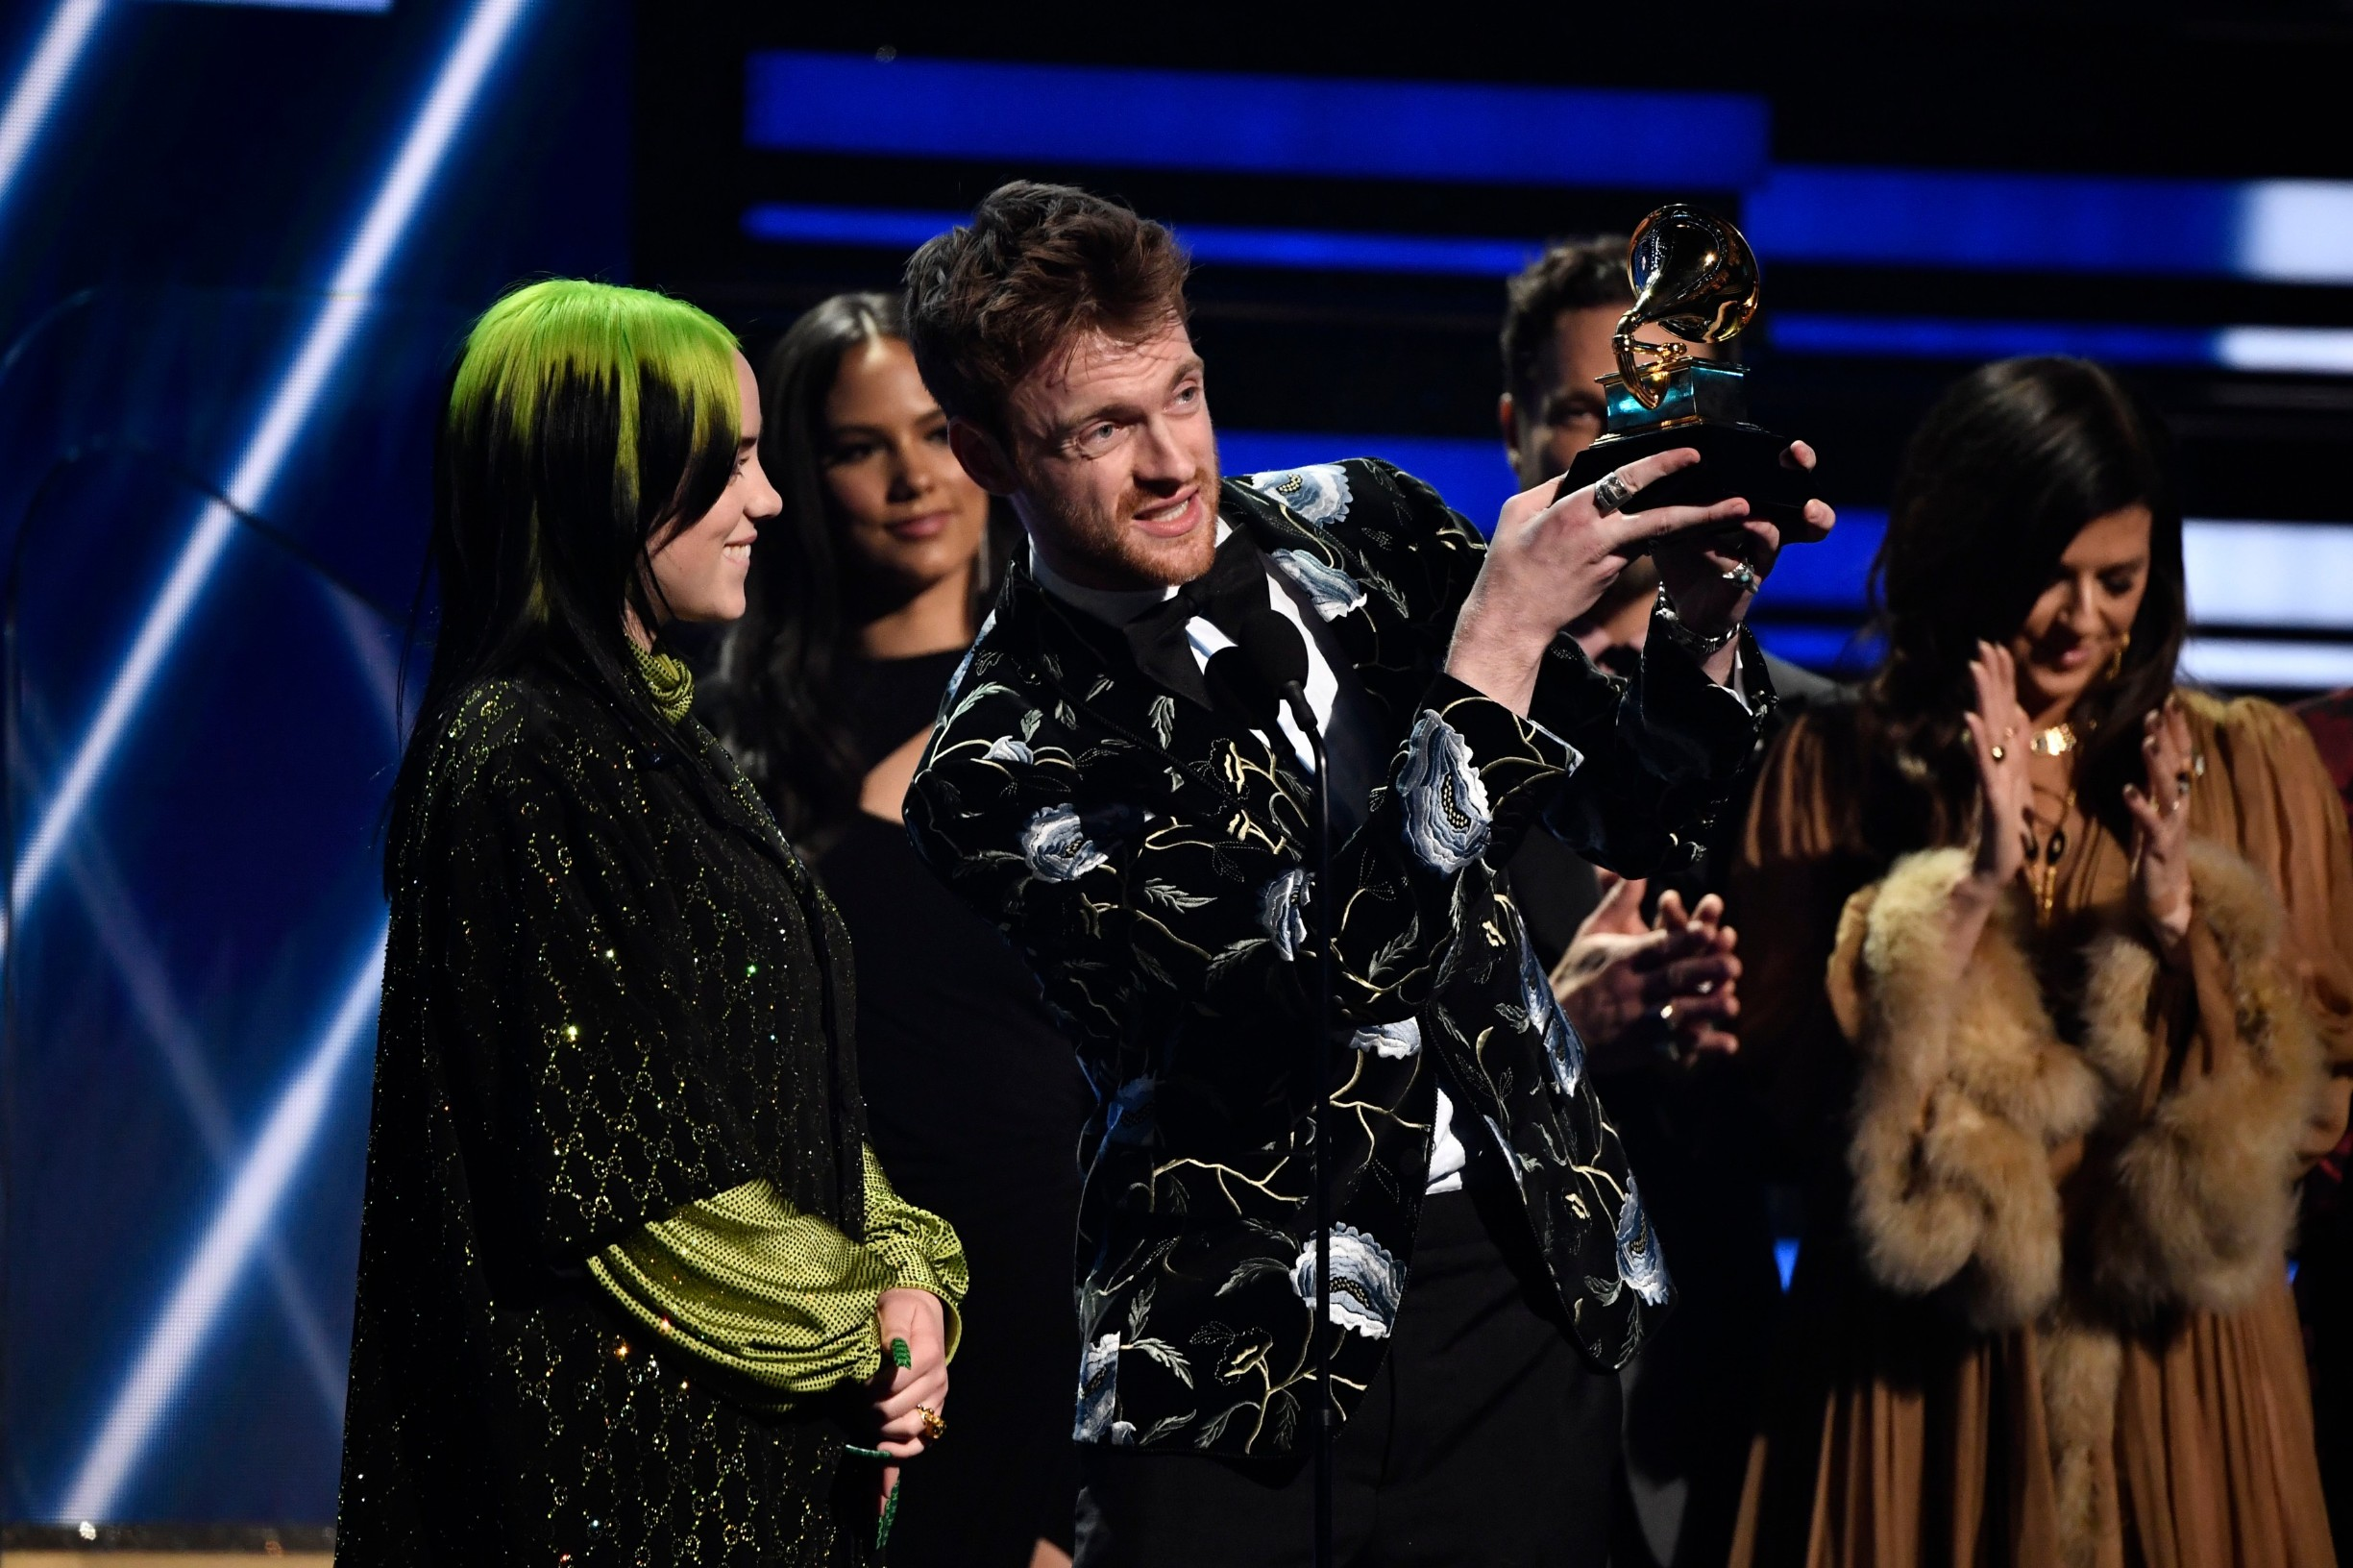 Jan 26, 2020; Los Angeles, CA, USA; Finneas O'Connell (right) and Billie Eilish accept the award for song of the year during the 62nd annual GRAMMY Awards on Jan. 26, 2020 at the STAPLES Center in Los Angeles, Calif., Image: 494965934, License: Rights-managed, Restrictions: *** World Rights ***, Model Release: no, Credit line: USA TODAY Network / ddp USA / Profimedia